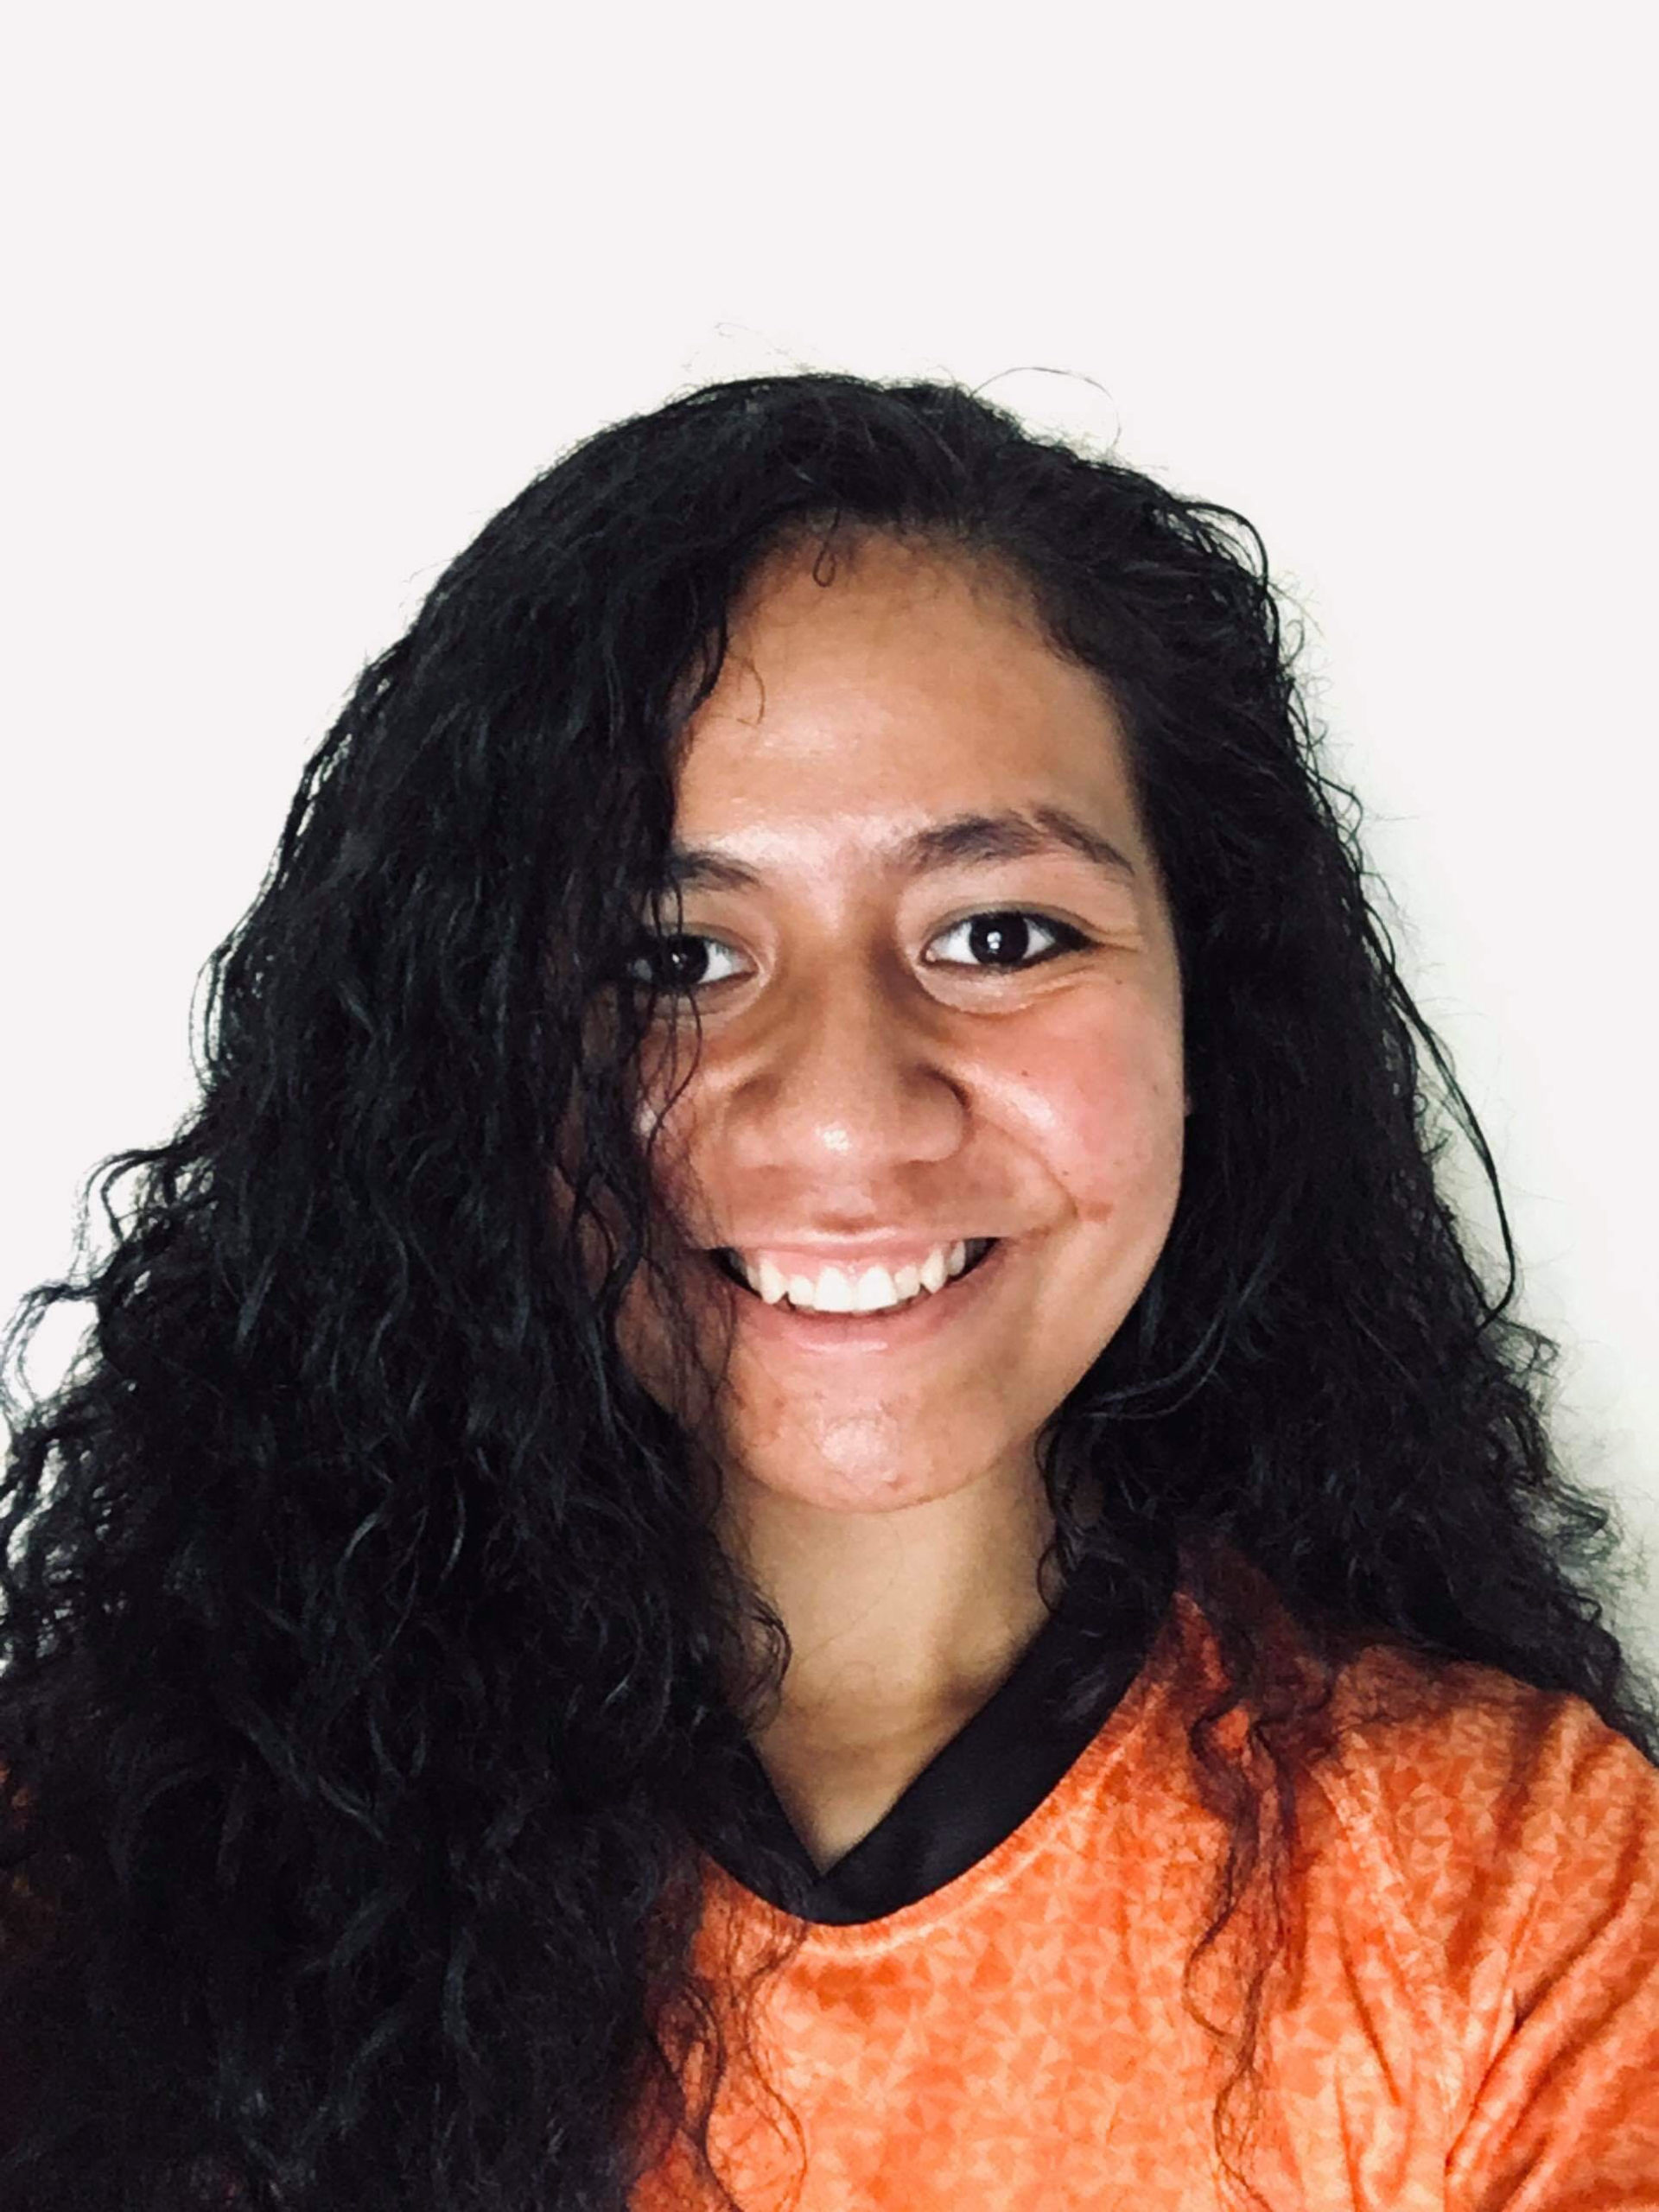 "Hevani Kaihau, 20, is receiving the David Williamson Referee Scholarship for 2020 to advance her skills and experience as an emerging rugby official. The scholarship fund was created in 2017 to recruit, train and coach young referees in honor of David ""Bunny"" Williamson, a national panel referee and referee evaluator. The fund's goals include assuring that teams, from youth to senior sides, have quality match officials by building a pipeline that will impact the sport for years to come. Will Nelson, 22, who just graduated from Santa Clara University, is also receiving a Williamson scholarship this summer. Kaihau comes from a rugby family. Her father, Bo, had a lengthy career as a player, including co-founding the Sacramento Lions. Hevani and her sister were high school teammates on the Land Park Harlequins. Bo Kaihau went on to be a match official and continues to coach. Kaihau has been taking classes at Sacramento City College and plans to transfer to a four year university. For now, she hopes to both referee and continuing playing. She would like to be a professional in one or both roles. ""My Dad gives me tips on refereeing and explaining the game,"" says Kaihau. ""I am beyond grateful to receive the scholarship."" The Northern California Rugby Referee Society oversees the Williamson Scholarship. The eight member scholarship committee includes, Helen Marcus, Jennifer Tetler, Phil Ackroyd, Bryant Byrnes, Matt Eason, Neil MacDonald, Peter Sandhill and Hosley Past recipients include Andrew Stockton, Matt Mulholland and Drew Arballo, all of whom are officiating at the college D1-A elite level. Each spent a summertime exchange in Alberta, Canada. ""Hevani first came to my attention when I was coordinating referee coaches for the Sacramento Kick Off Tournament in 2018,"" says scholarship committee chair David Hosley. ""Already a very good player, she wanted to try being a touch judge. By summer she was refing sevens and has improved very quickly with support from our referee society coaches."" This year's recipients may travel to other regions of the U.S. or abroad for their exchanges. Rugby NorCal is planning to resume youth matches with high school girls seven-a-side league in the fall. Besides the scholarship, the fund also supports other referee exchanges through the year, sending teenaged Northern California referees to other regions for tournament assignments and coaching. More than two dozen young referees are expected to advance their skills through Williamson financial support this year."